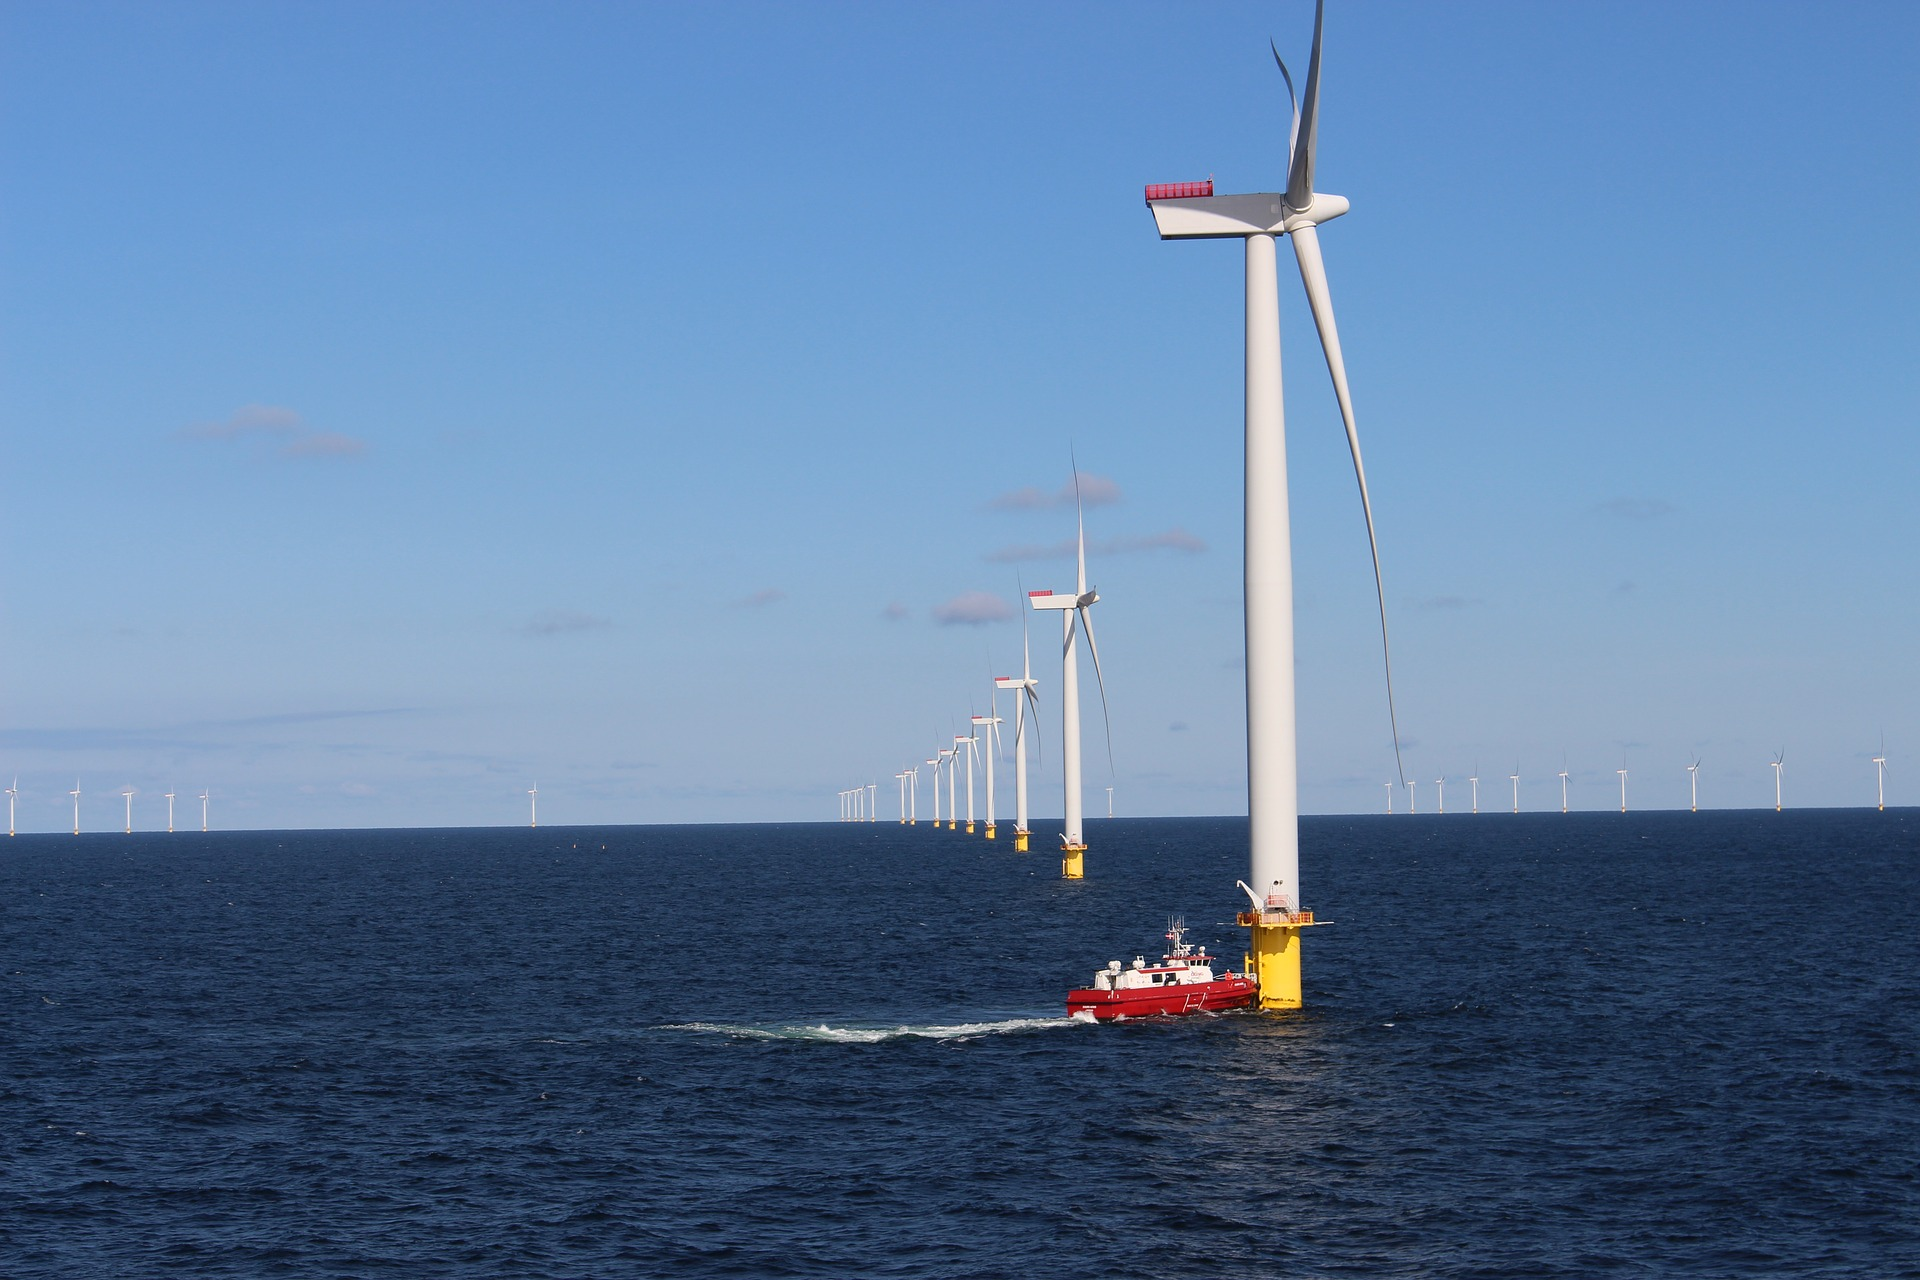 Denmark, the artificial islands to produce renewable energy